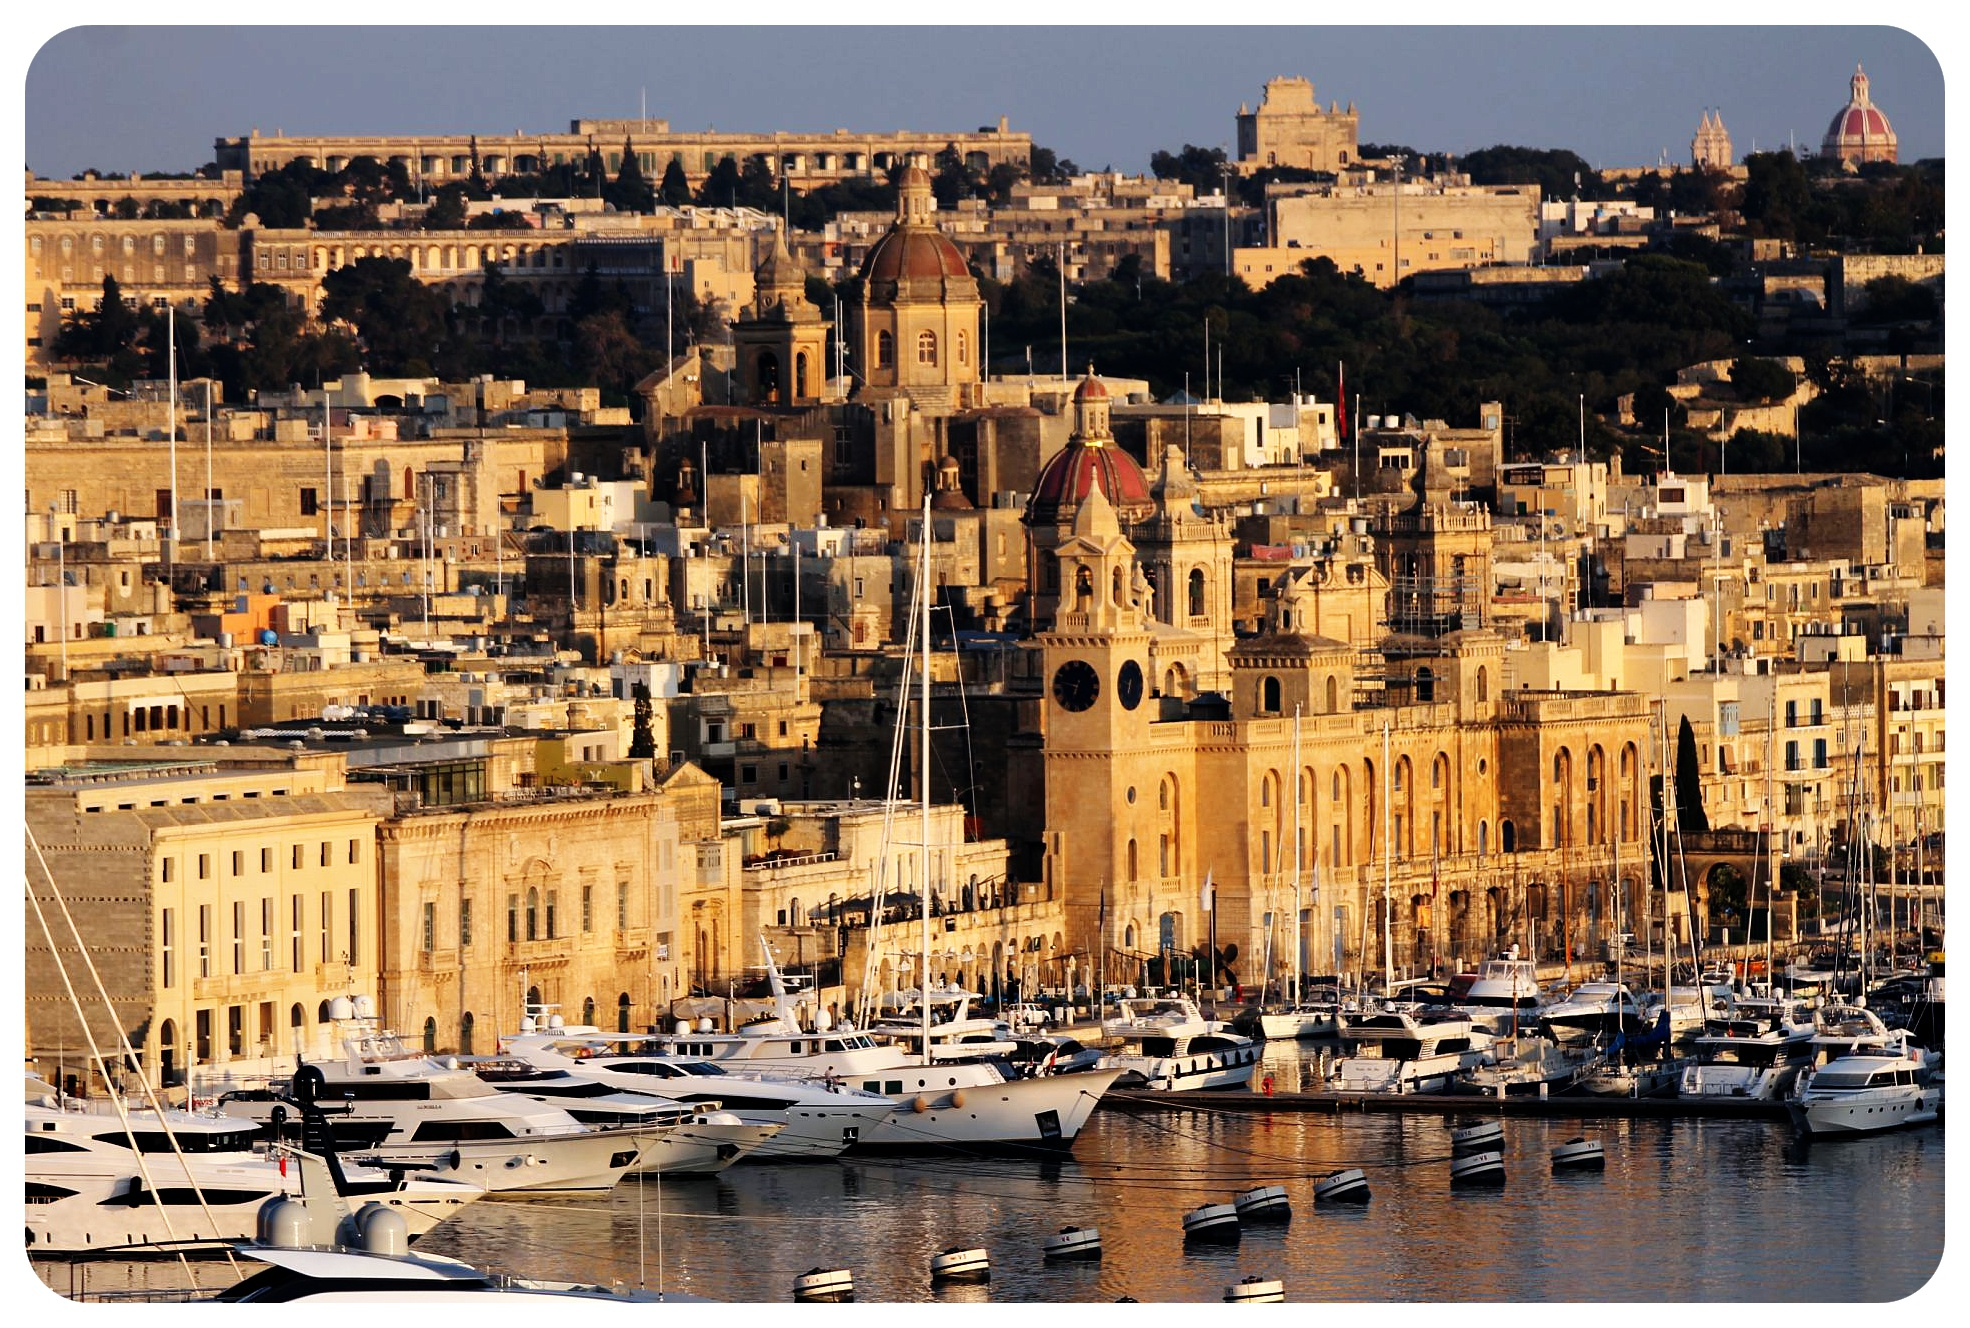 Introducing Malta: My first impressions and some random facts